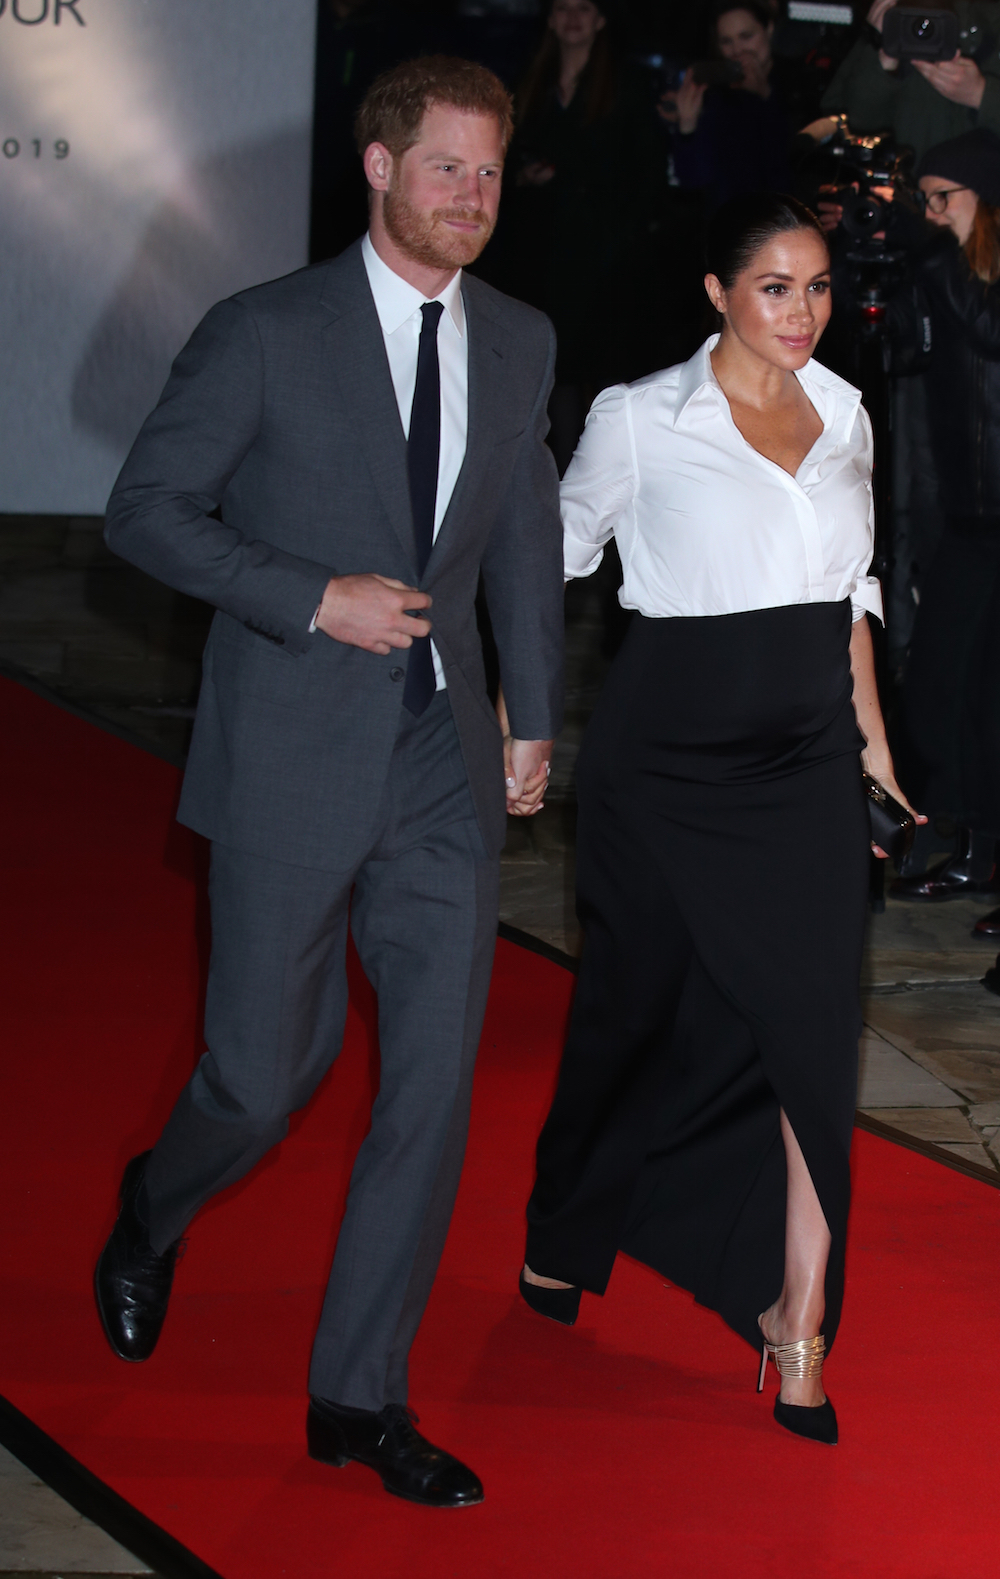 Meghan at the Endeavour Fund Awards in February